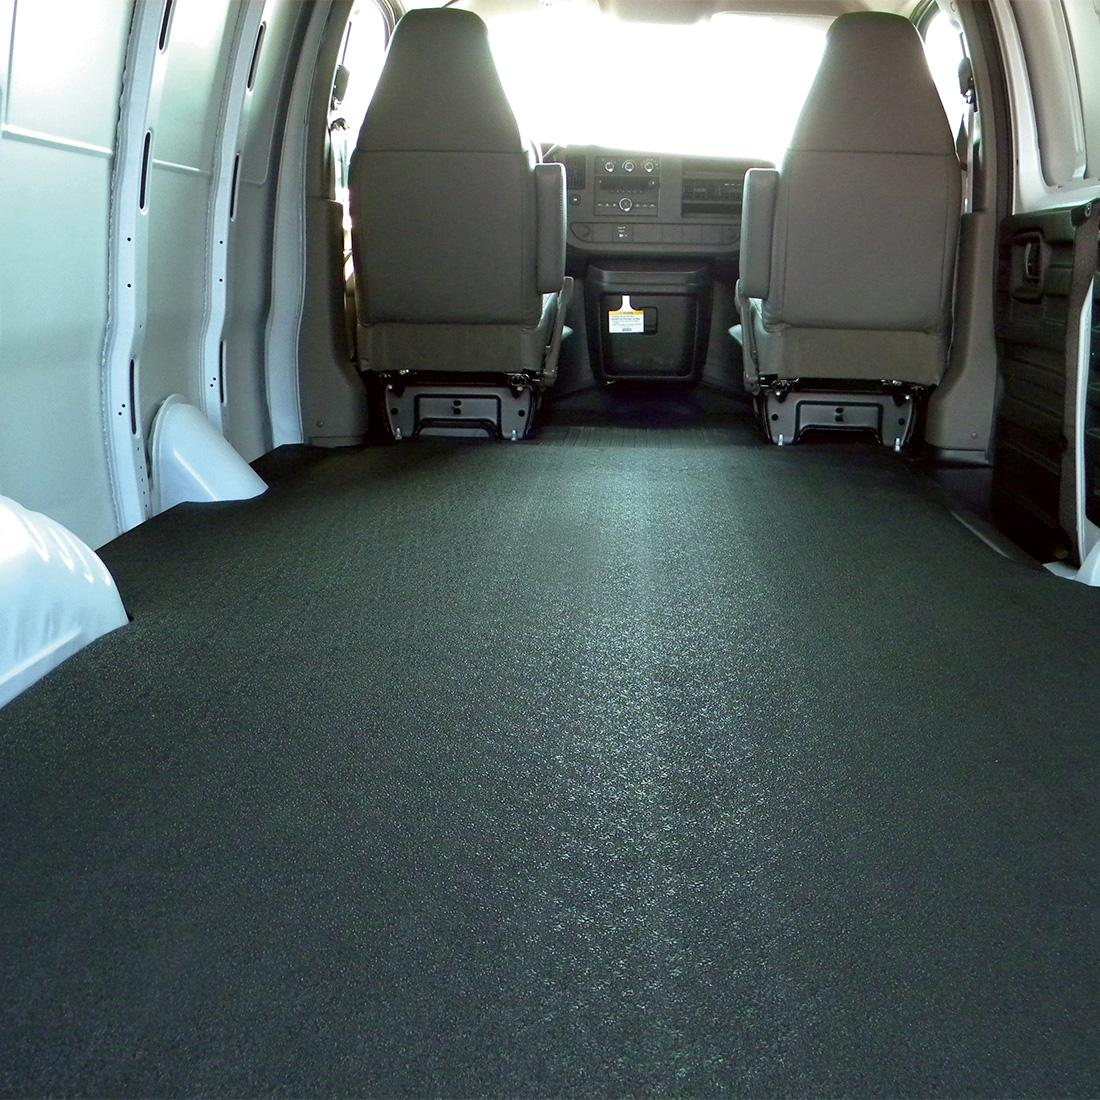 Vantred Van Floor Protection